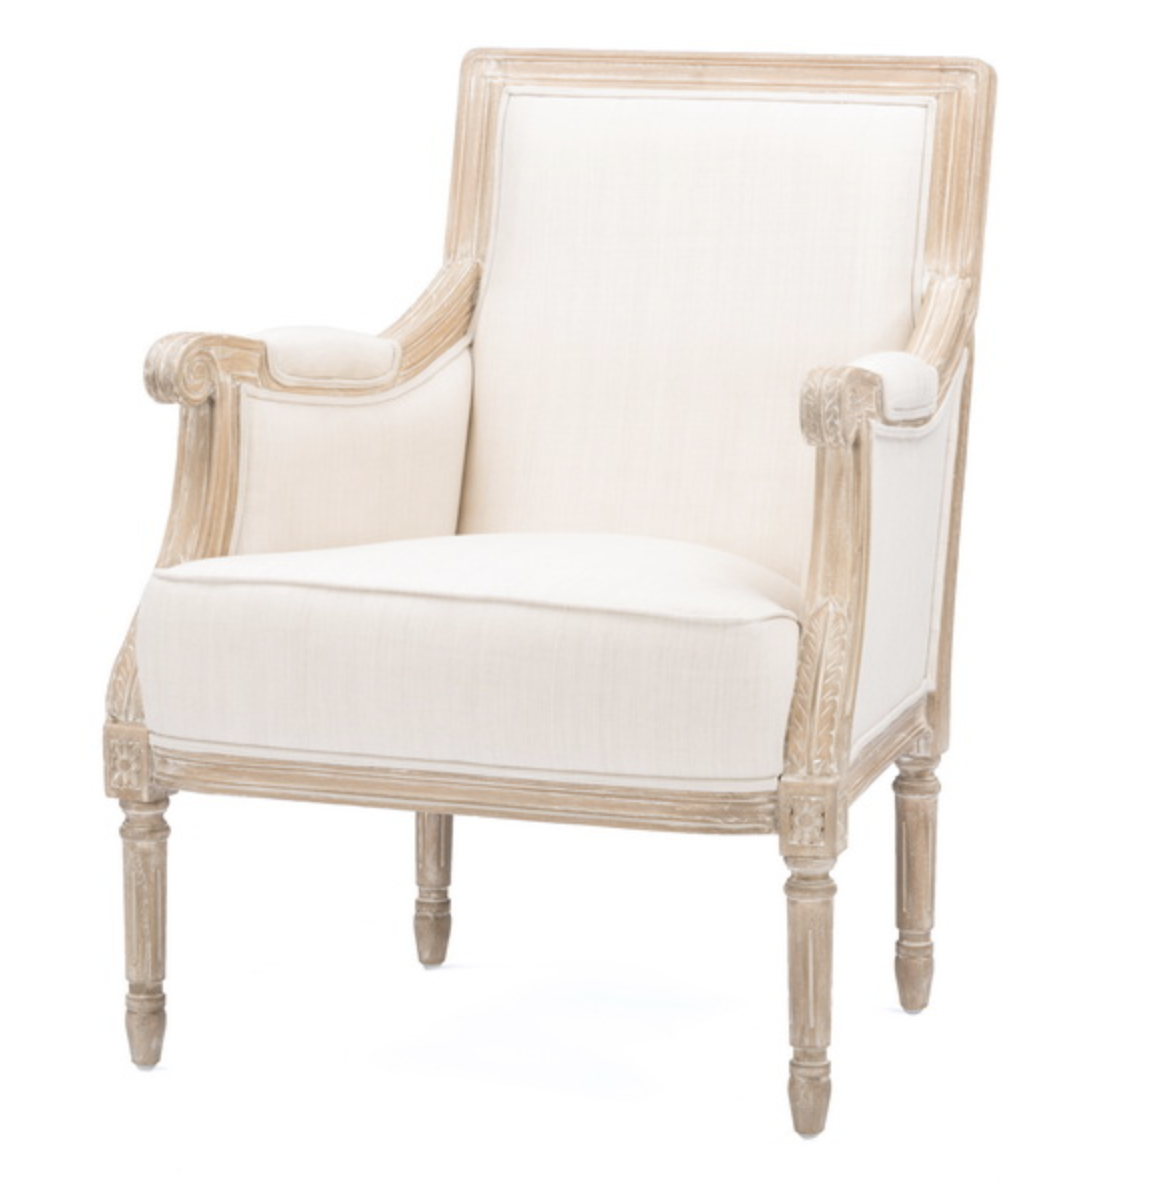 Ivy French Chair $100